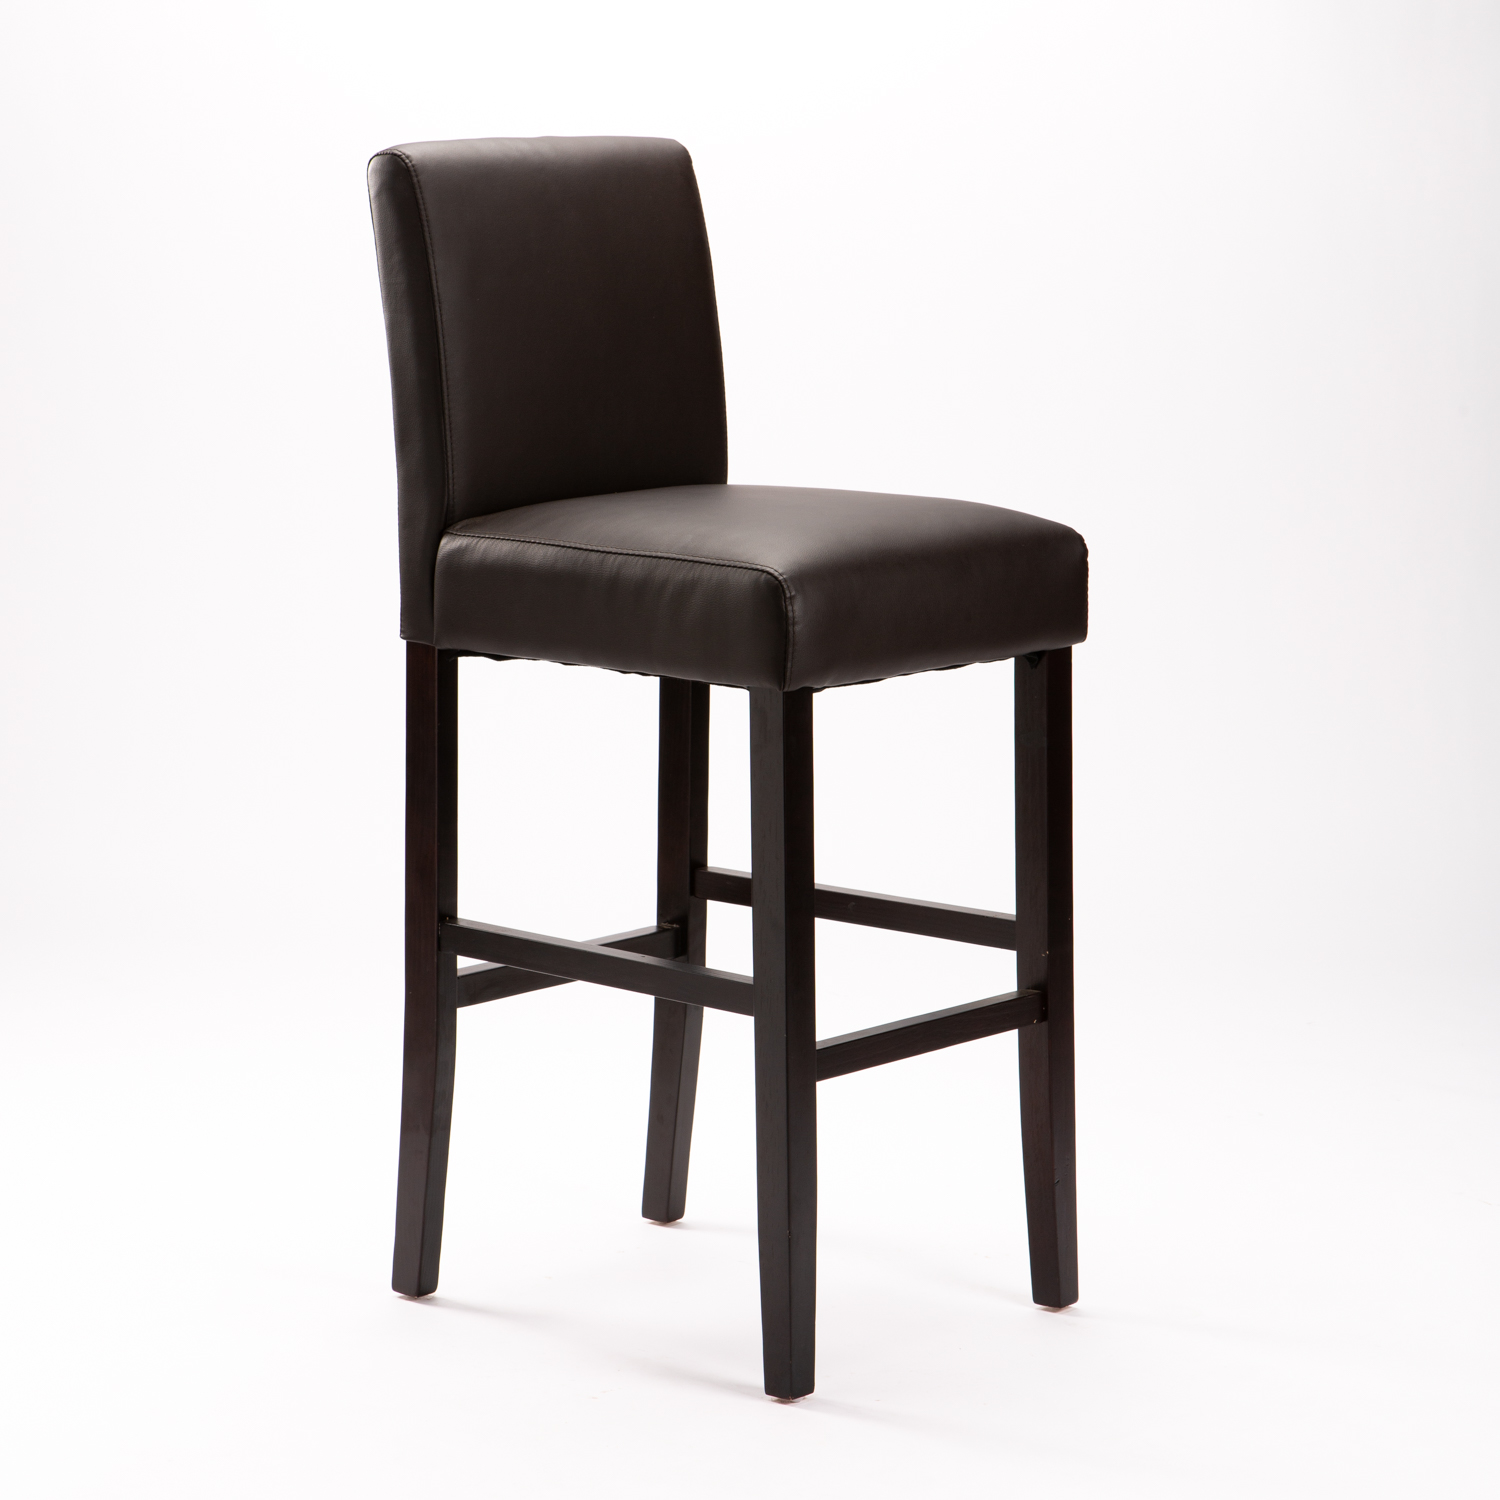 Tom Leather Touch Barstool - Brown